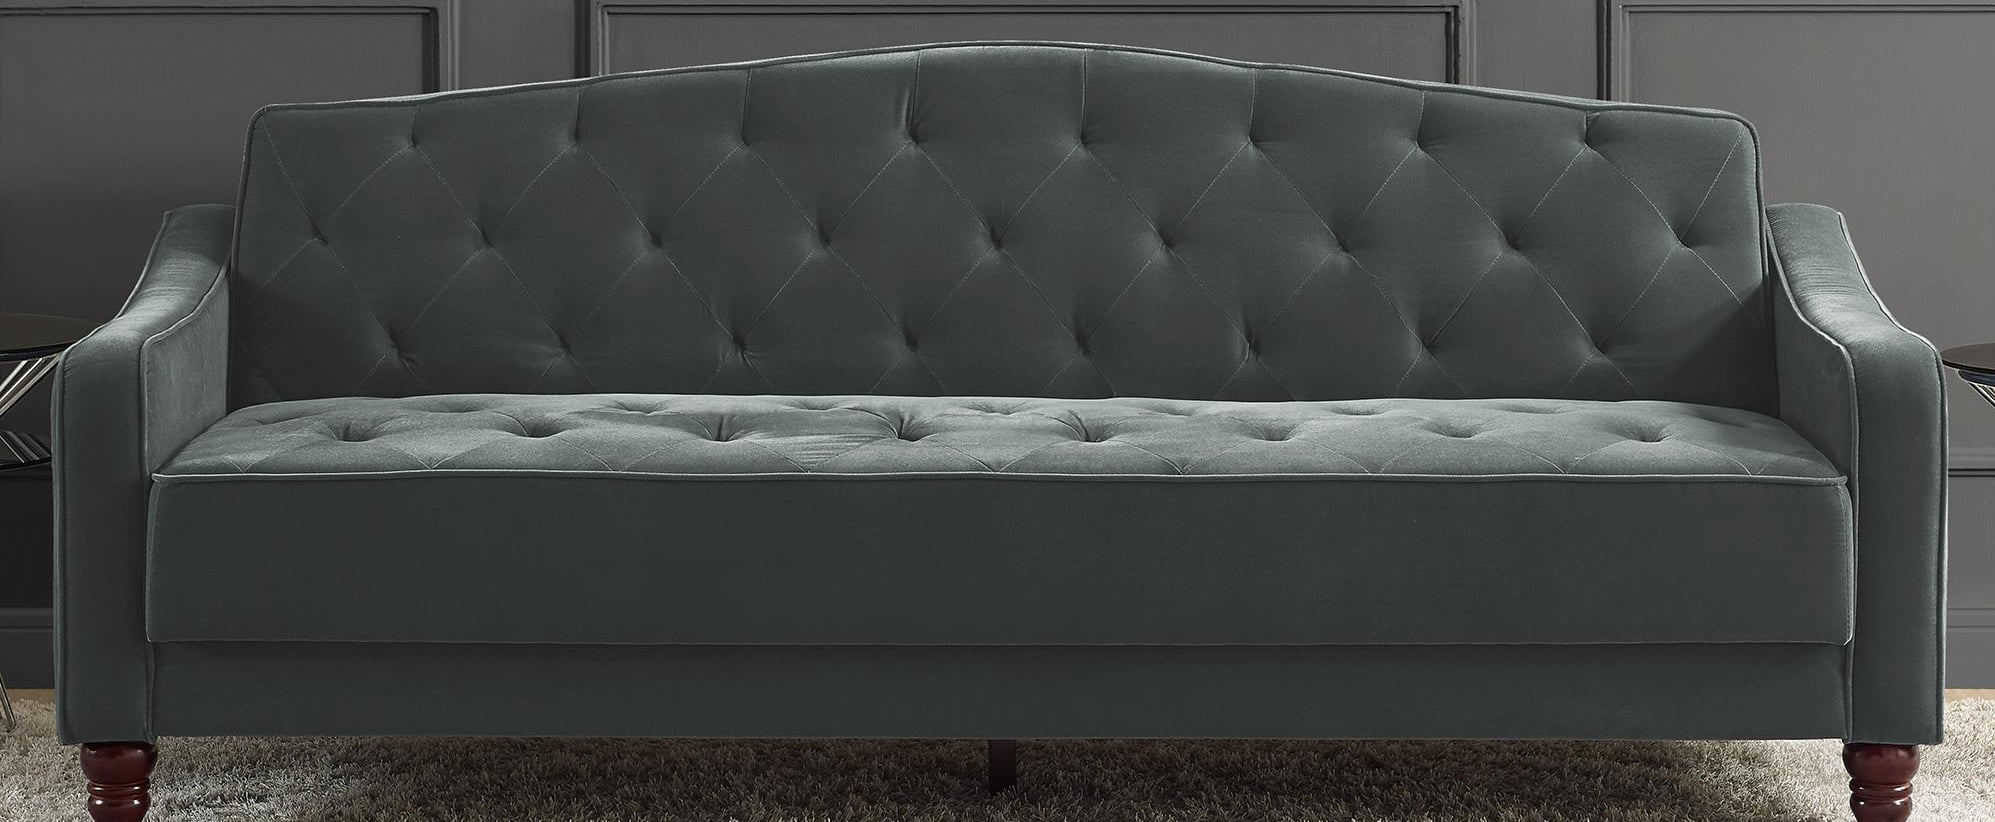 Best Couches From Walmart